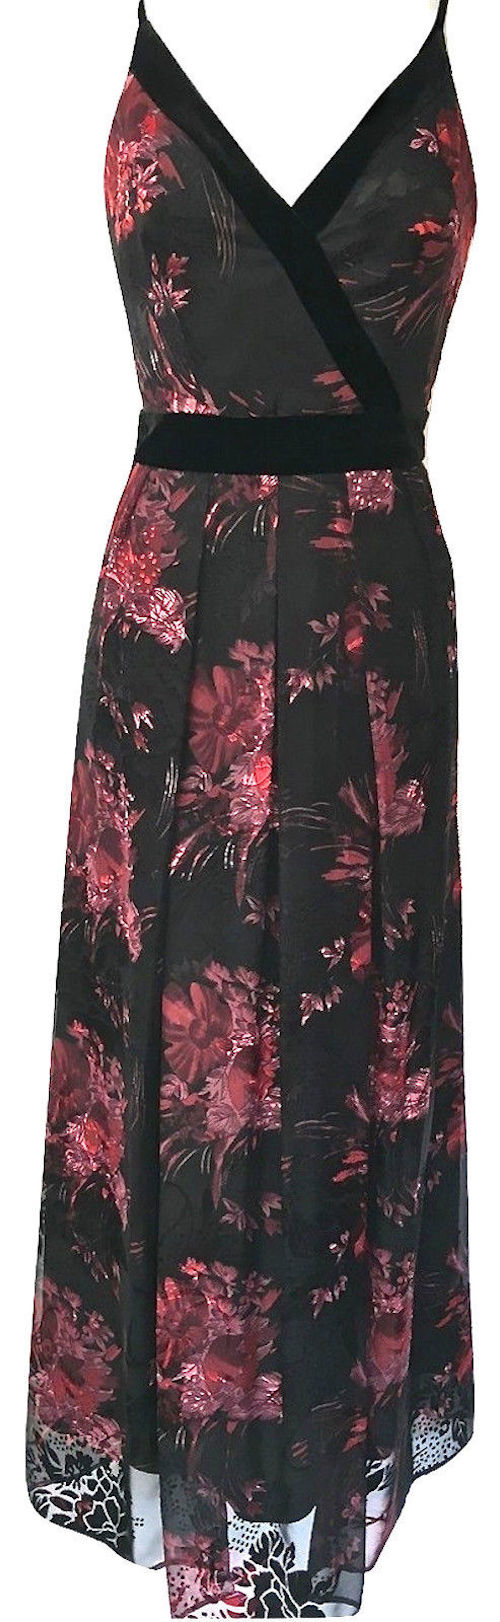 Karen Millen Devore Maxi Long Dress Floral Red Black Dx236